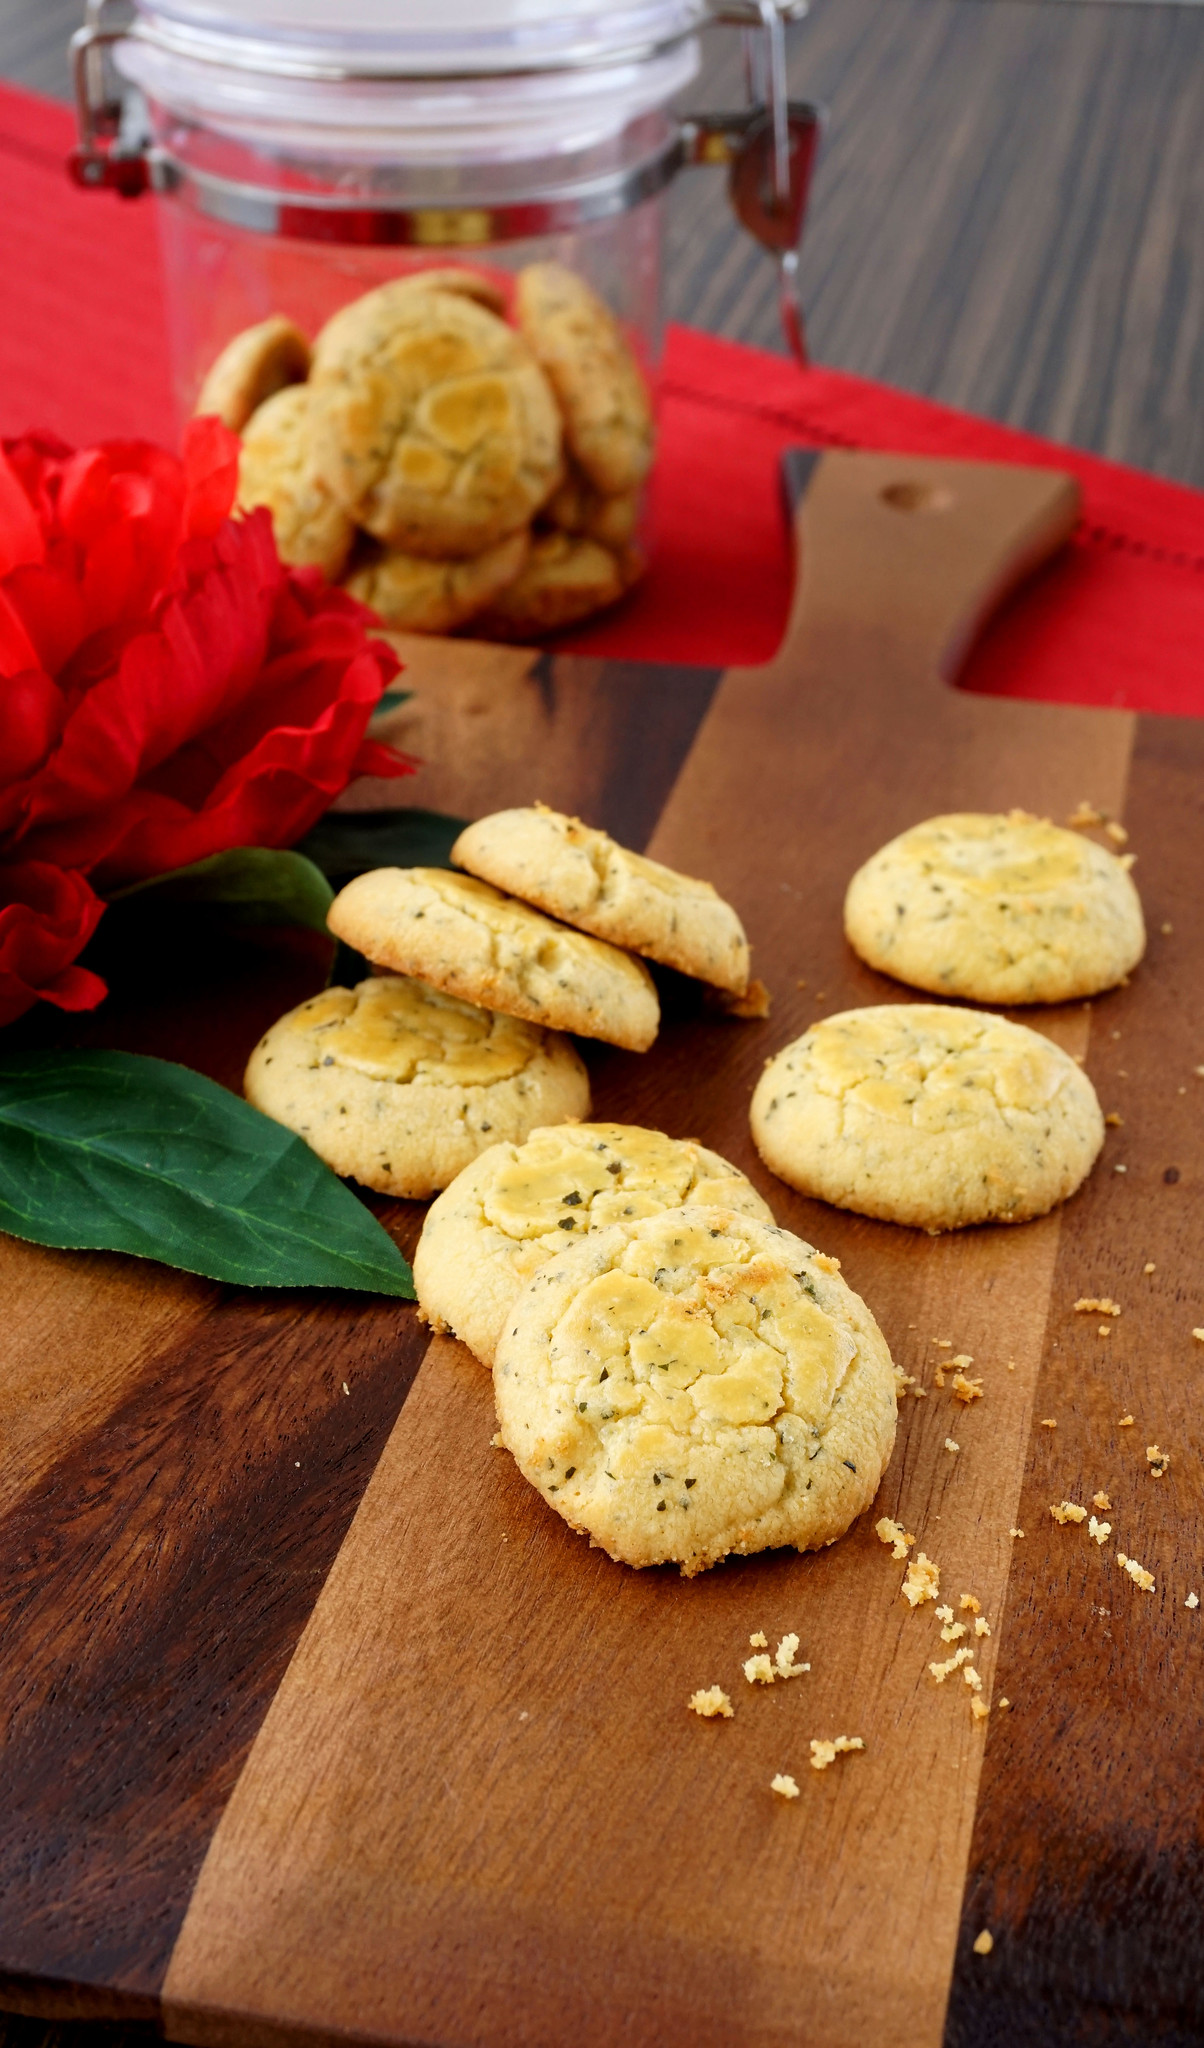 6. Salted Egg Cookies